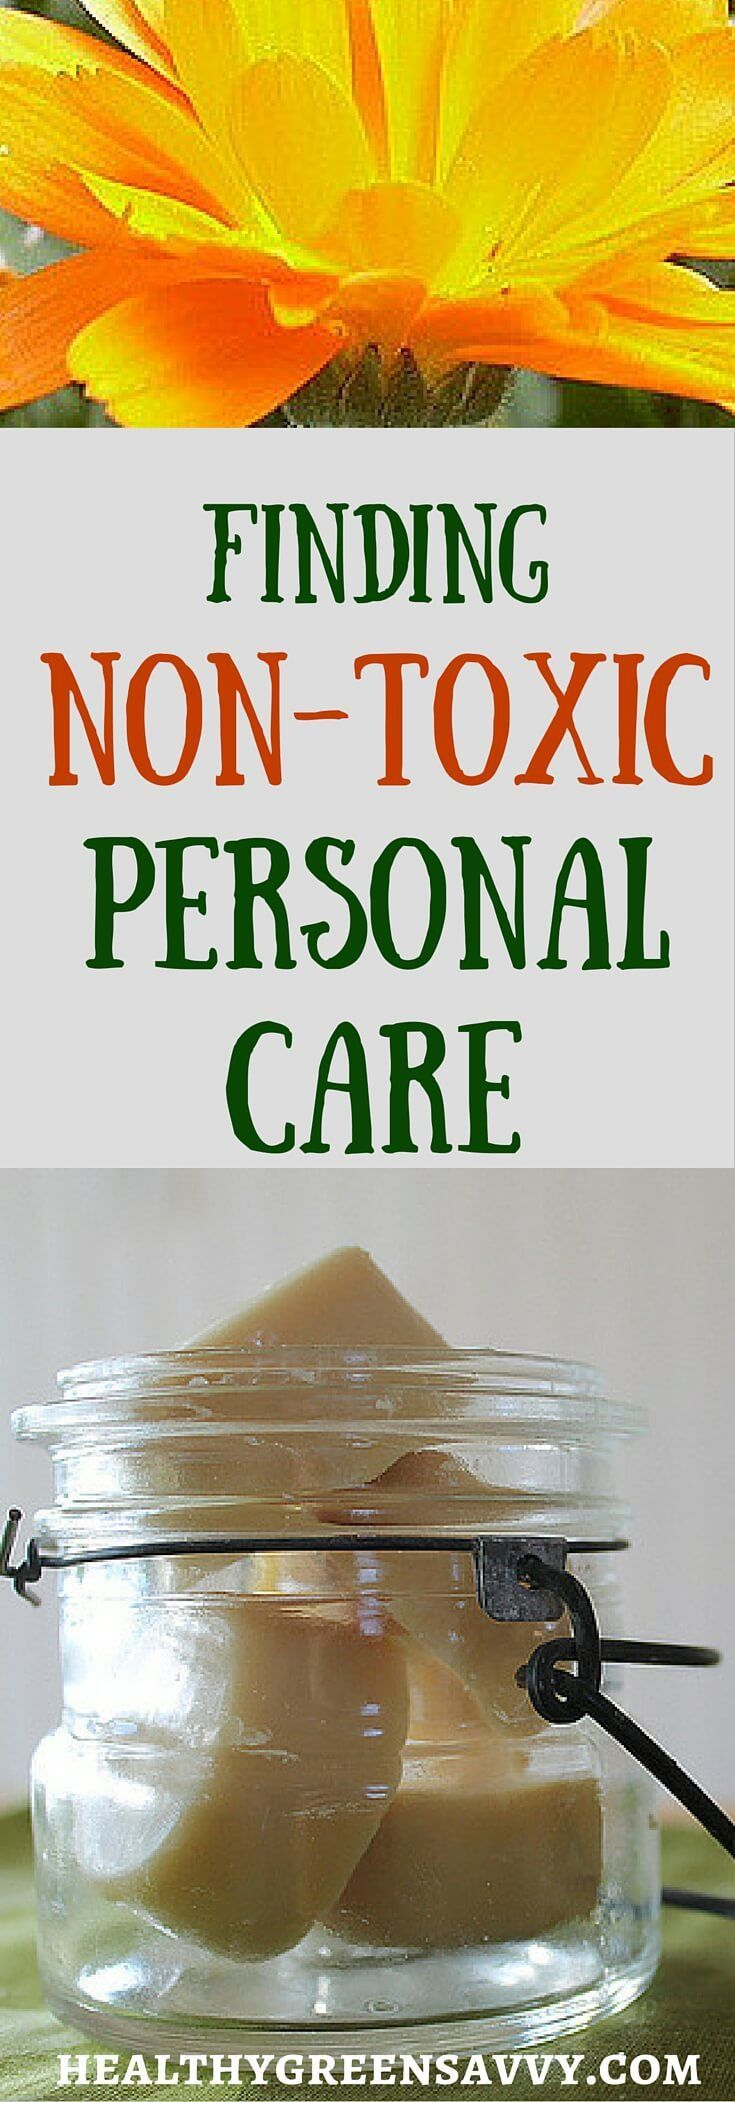 Only a few hundred of the 80,000 chemicals in use today have been studied for safety. Here's what you need to know about personal care products to protect yourself from carcinogens, endocrine disruptors and other nasties. Click to read more or pin to save for later!